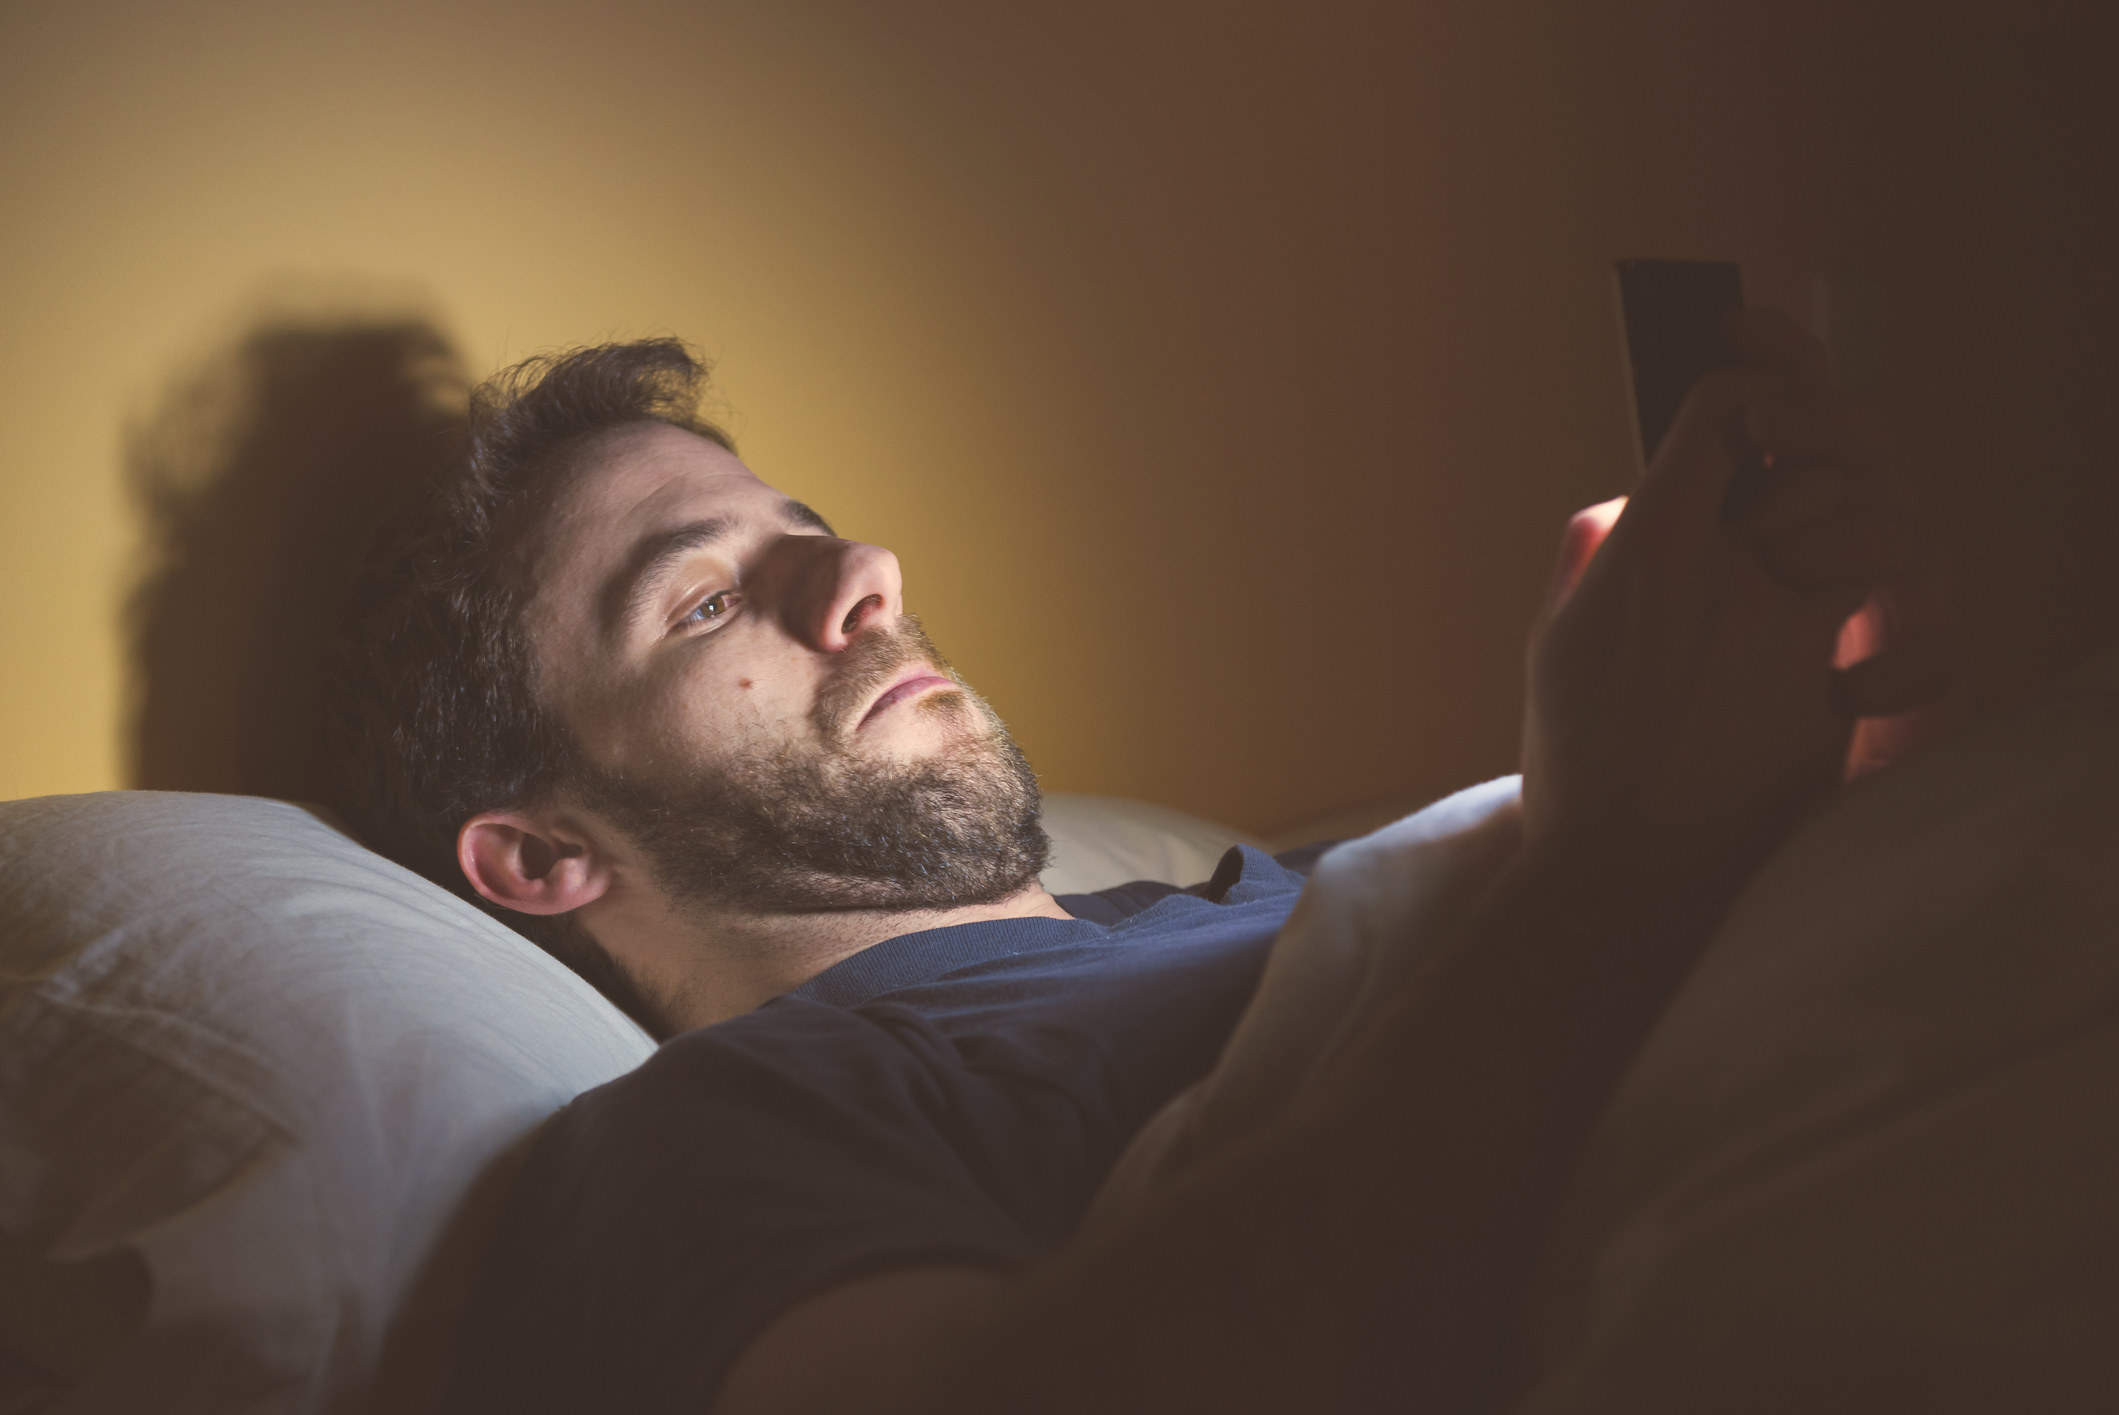 A guy looking at his phone in bed